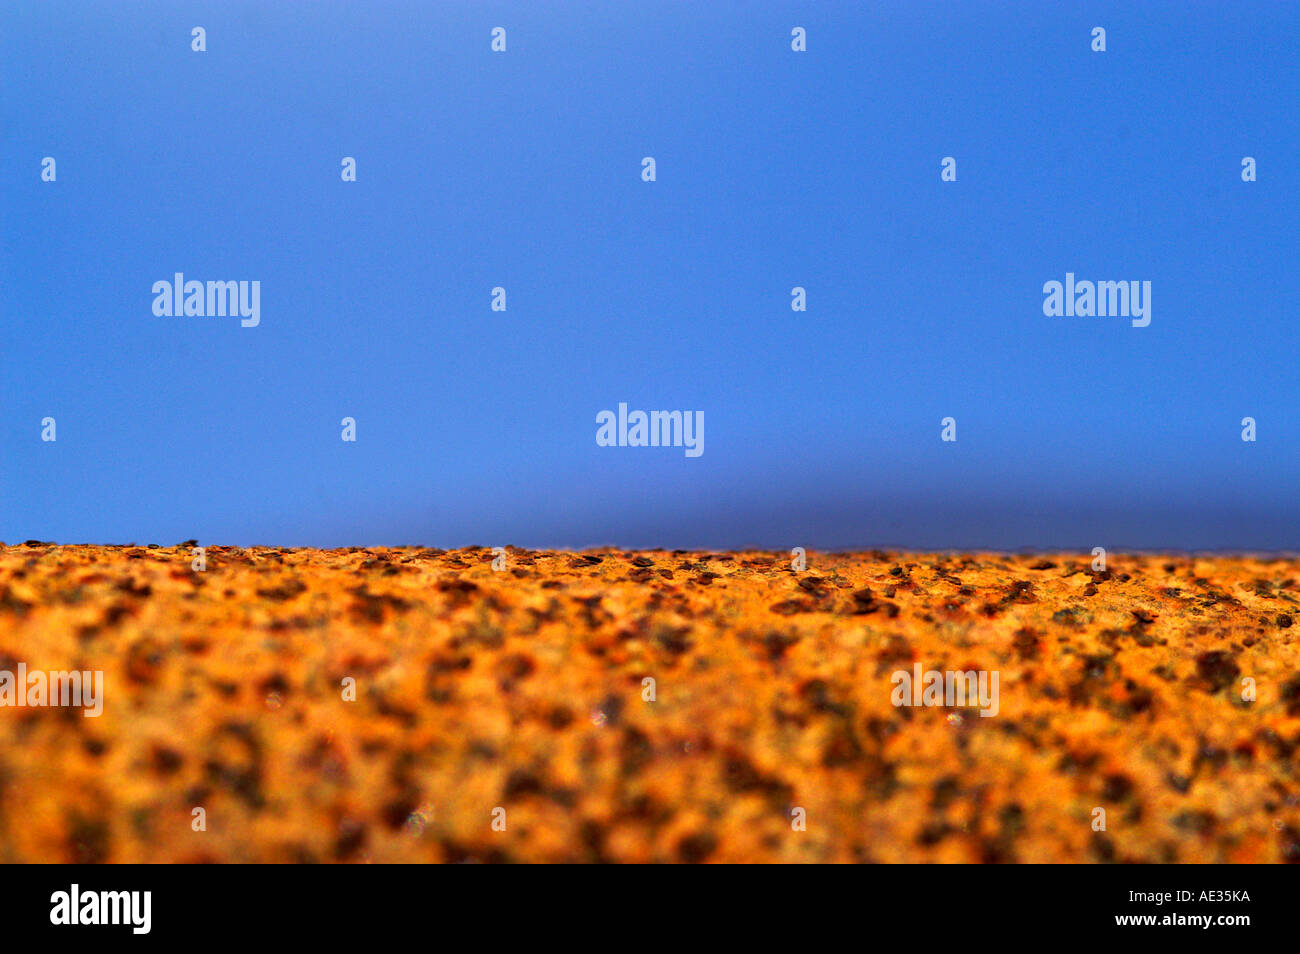 Rusty metal and blue sky, resemblance of Martian environment after huge  terraforming - Stock Image